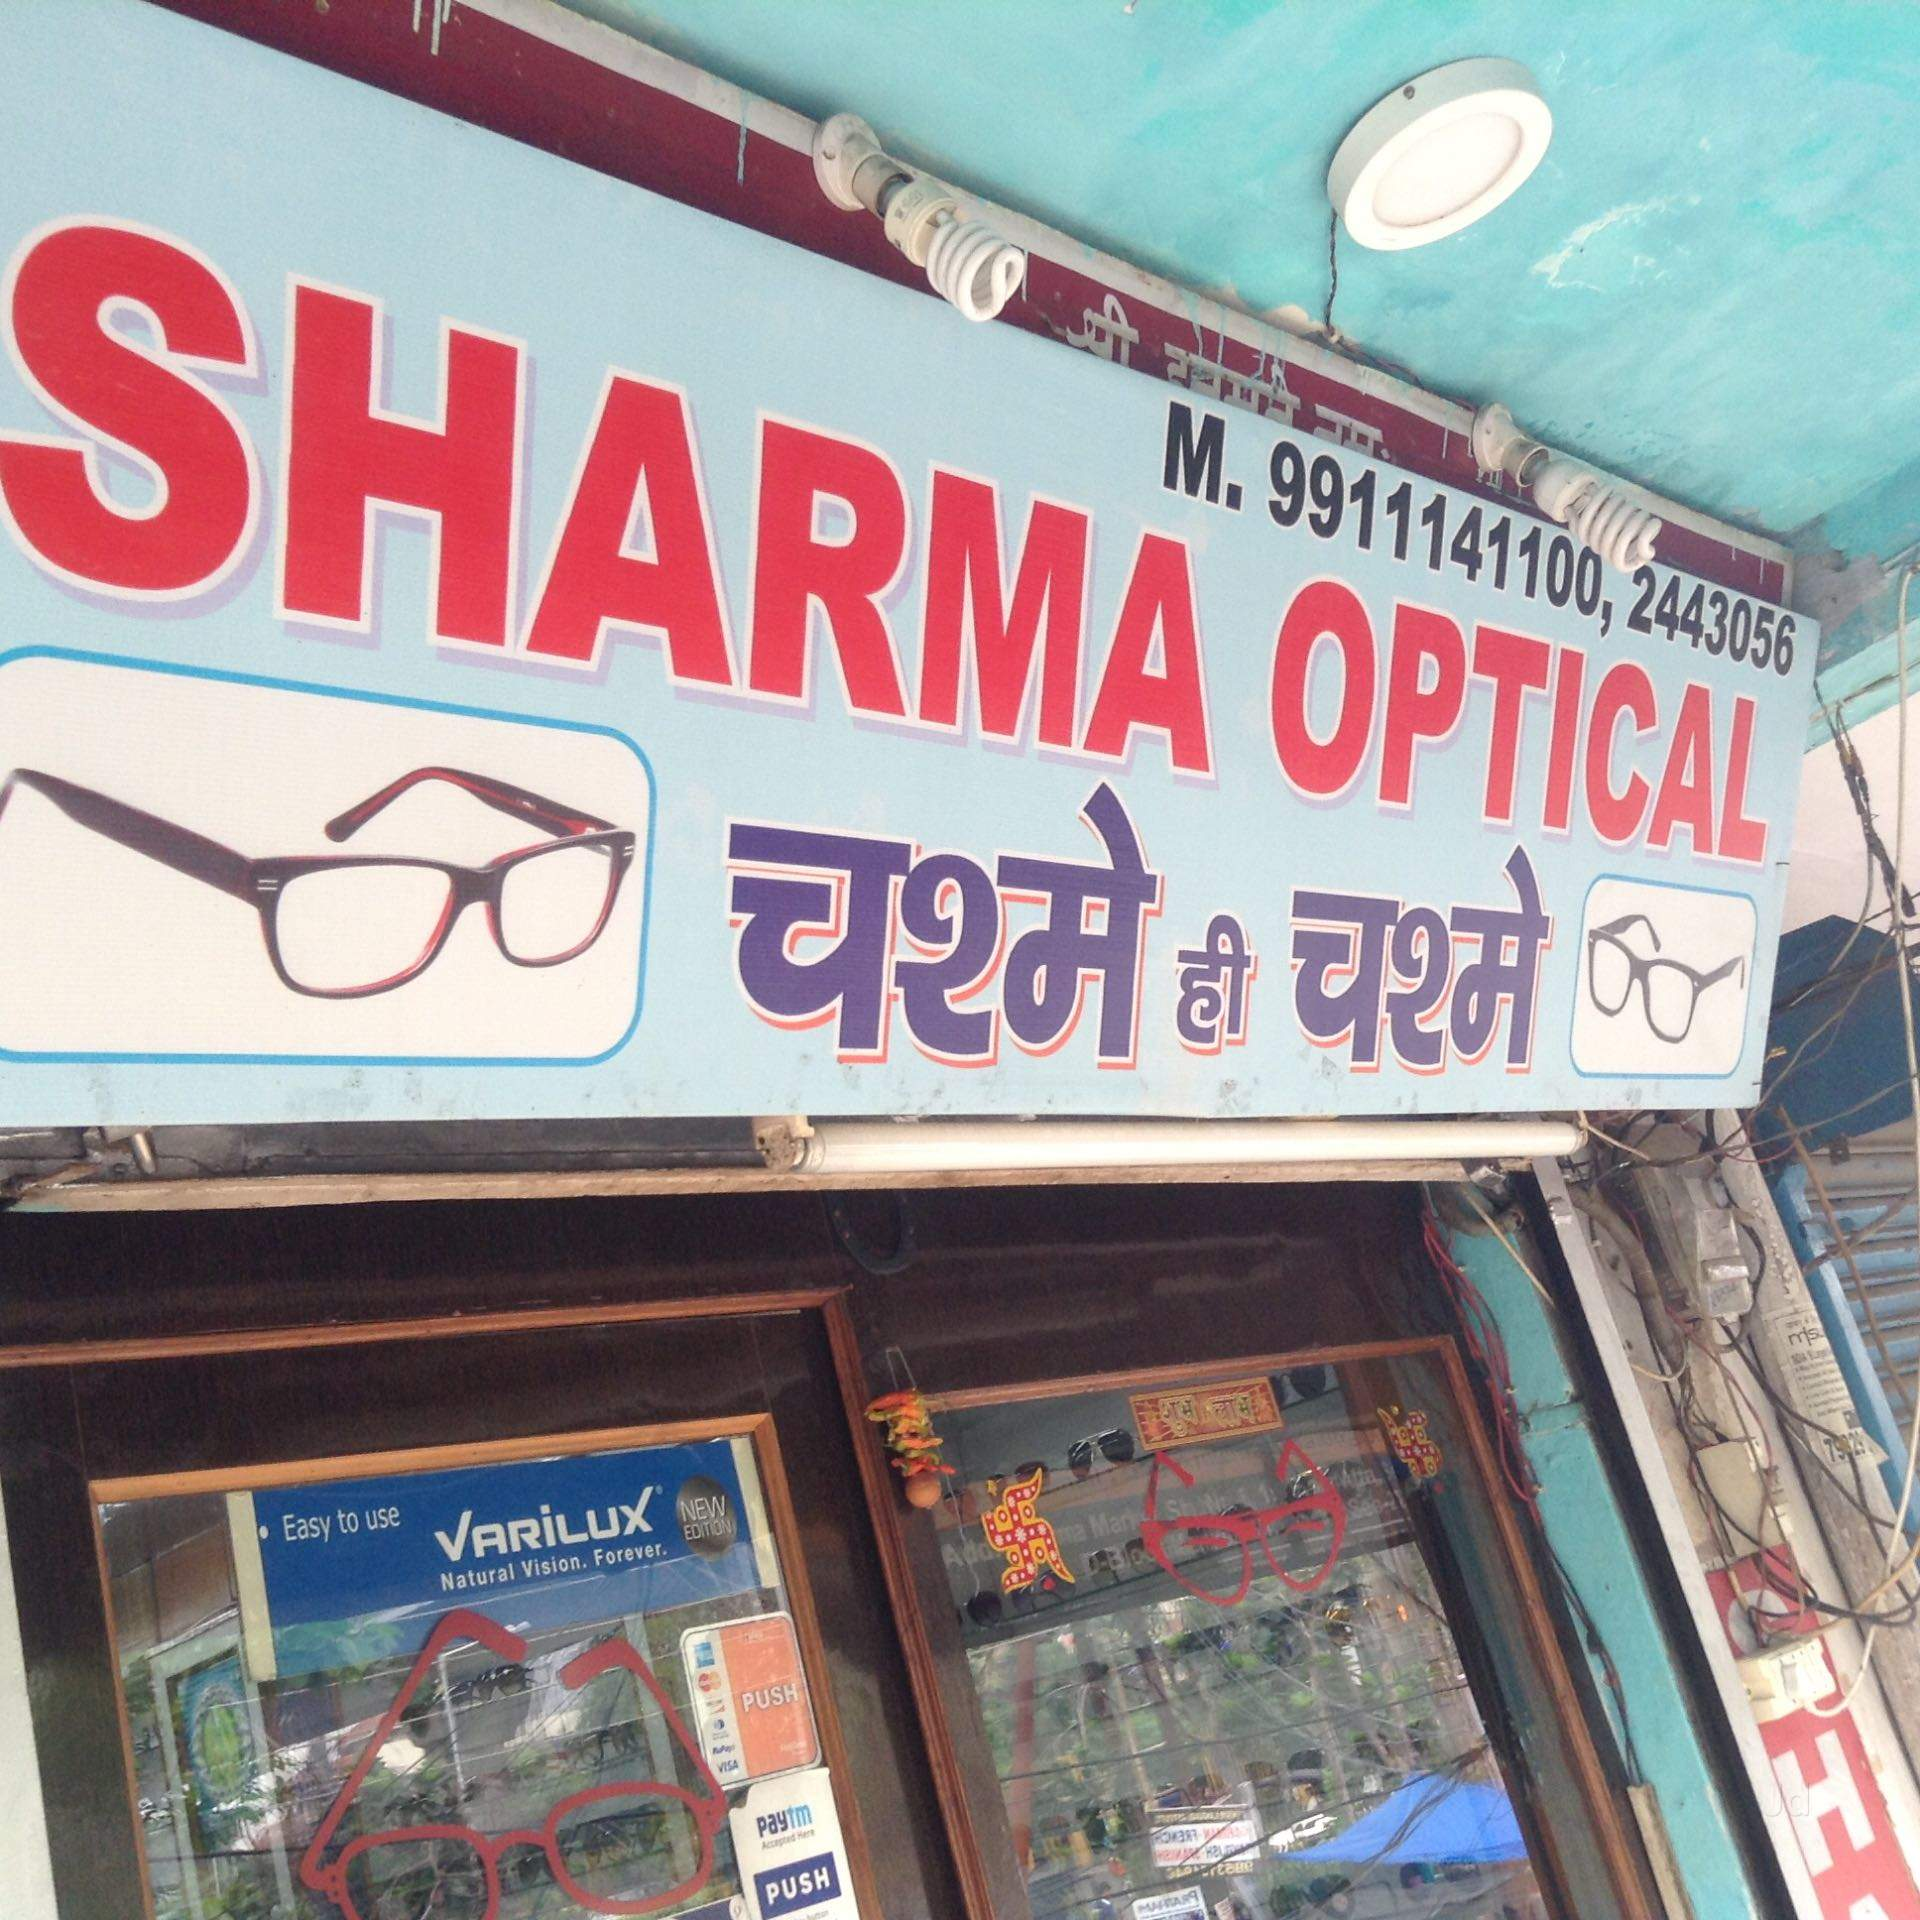 571a4abd63 Top 100 Sunglass Repair   Services in Noida Sector 18 - Best ...